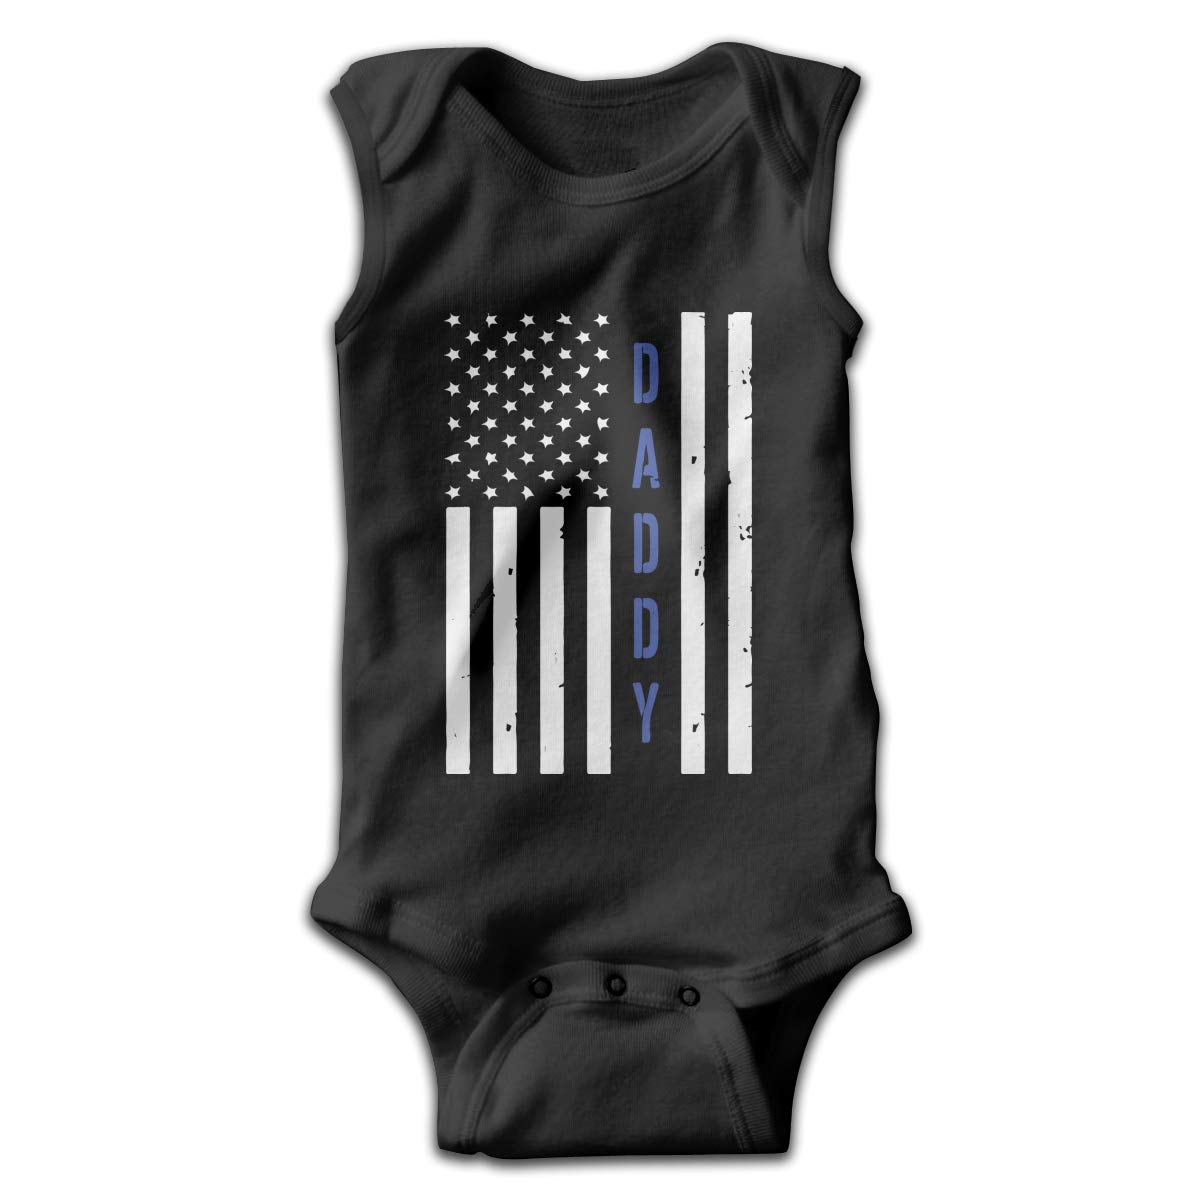 MMSSsJQ6 Police Daddy Blue Line Daddy Infant Baby Boys Girls Infant Creeper Sleeveless Rompers Romper Jumpsuit